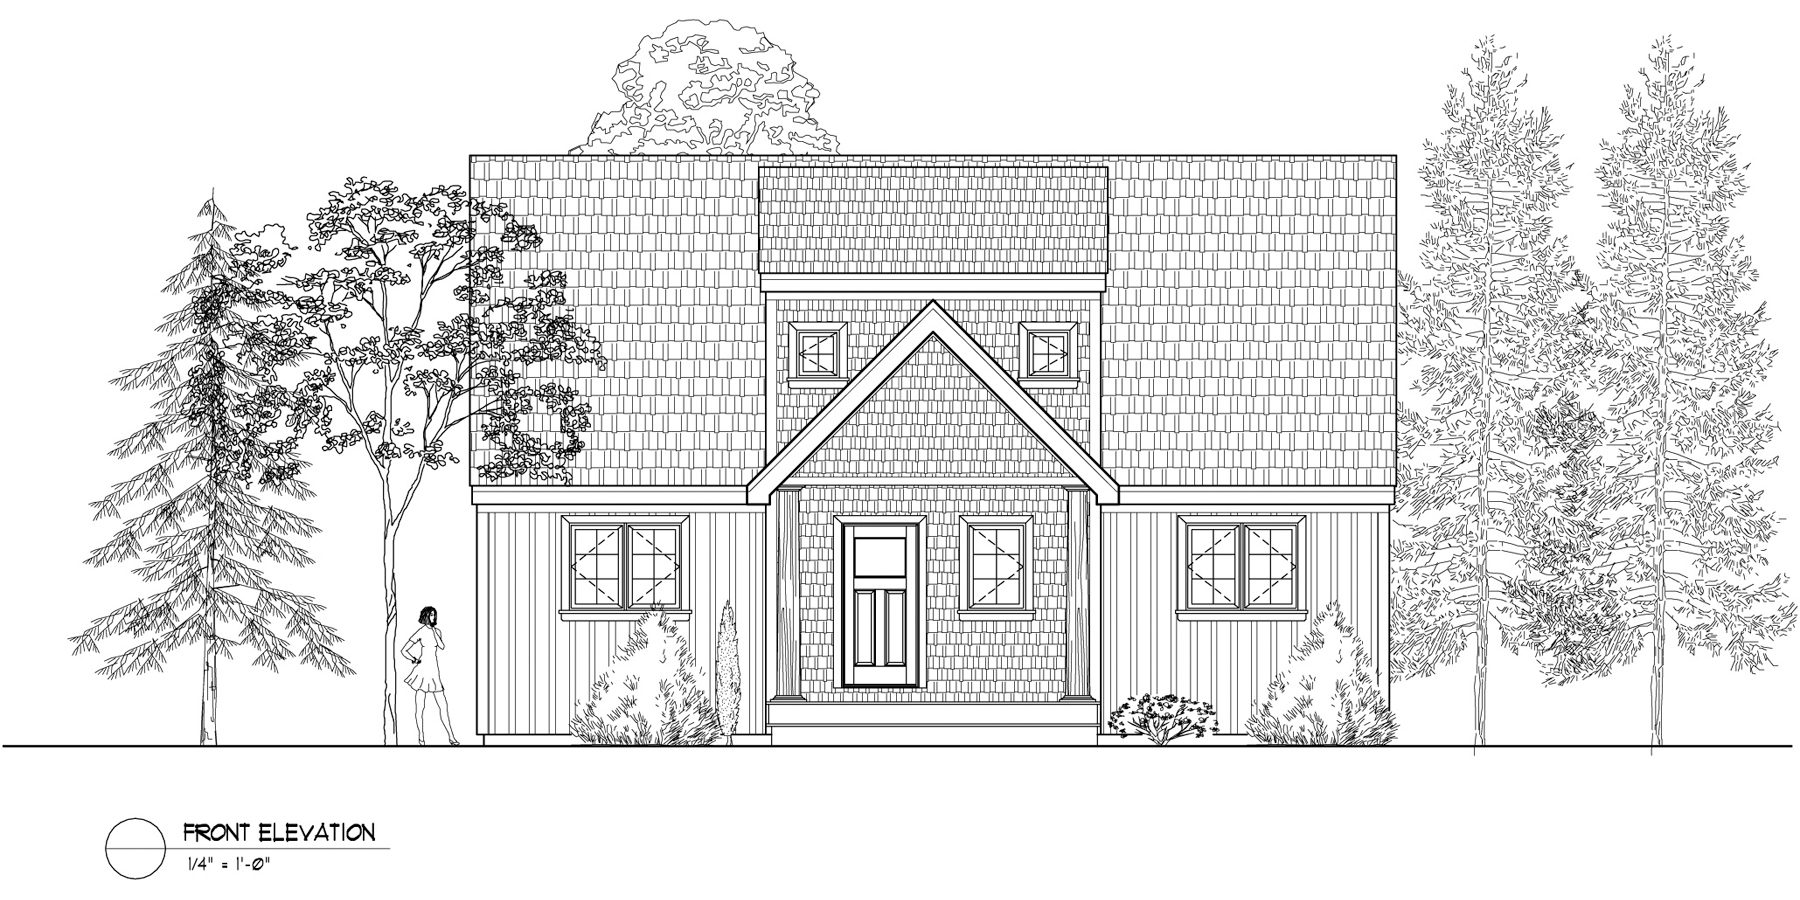 Normerica Timber Frames, House Plan, The Routt 3419, Front Elevation